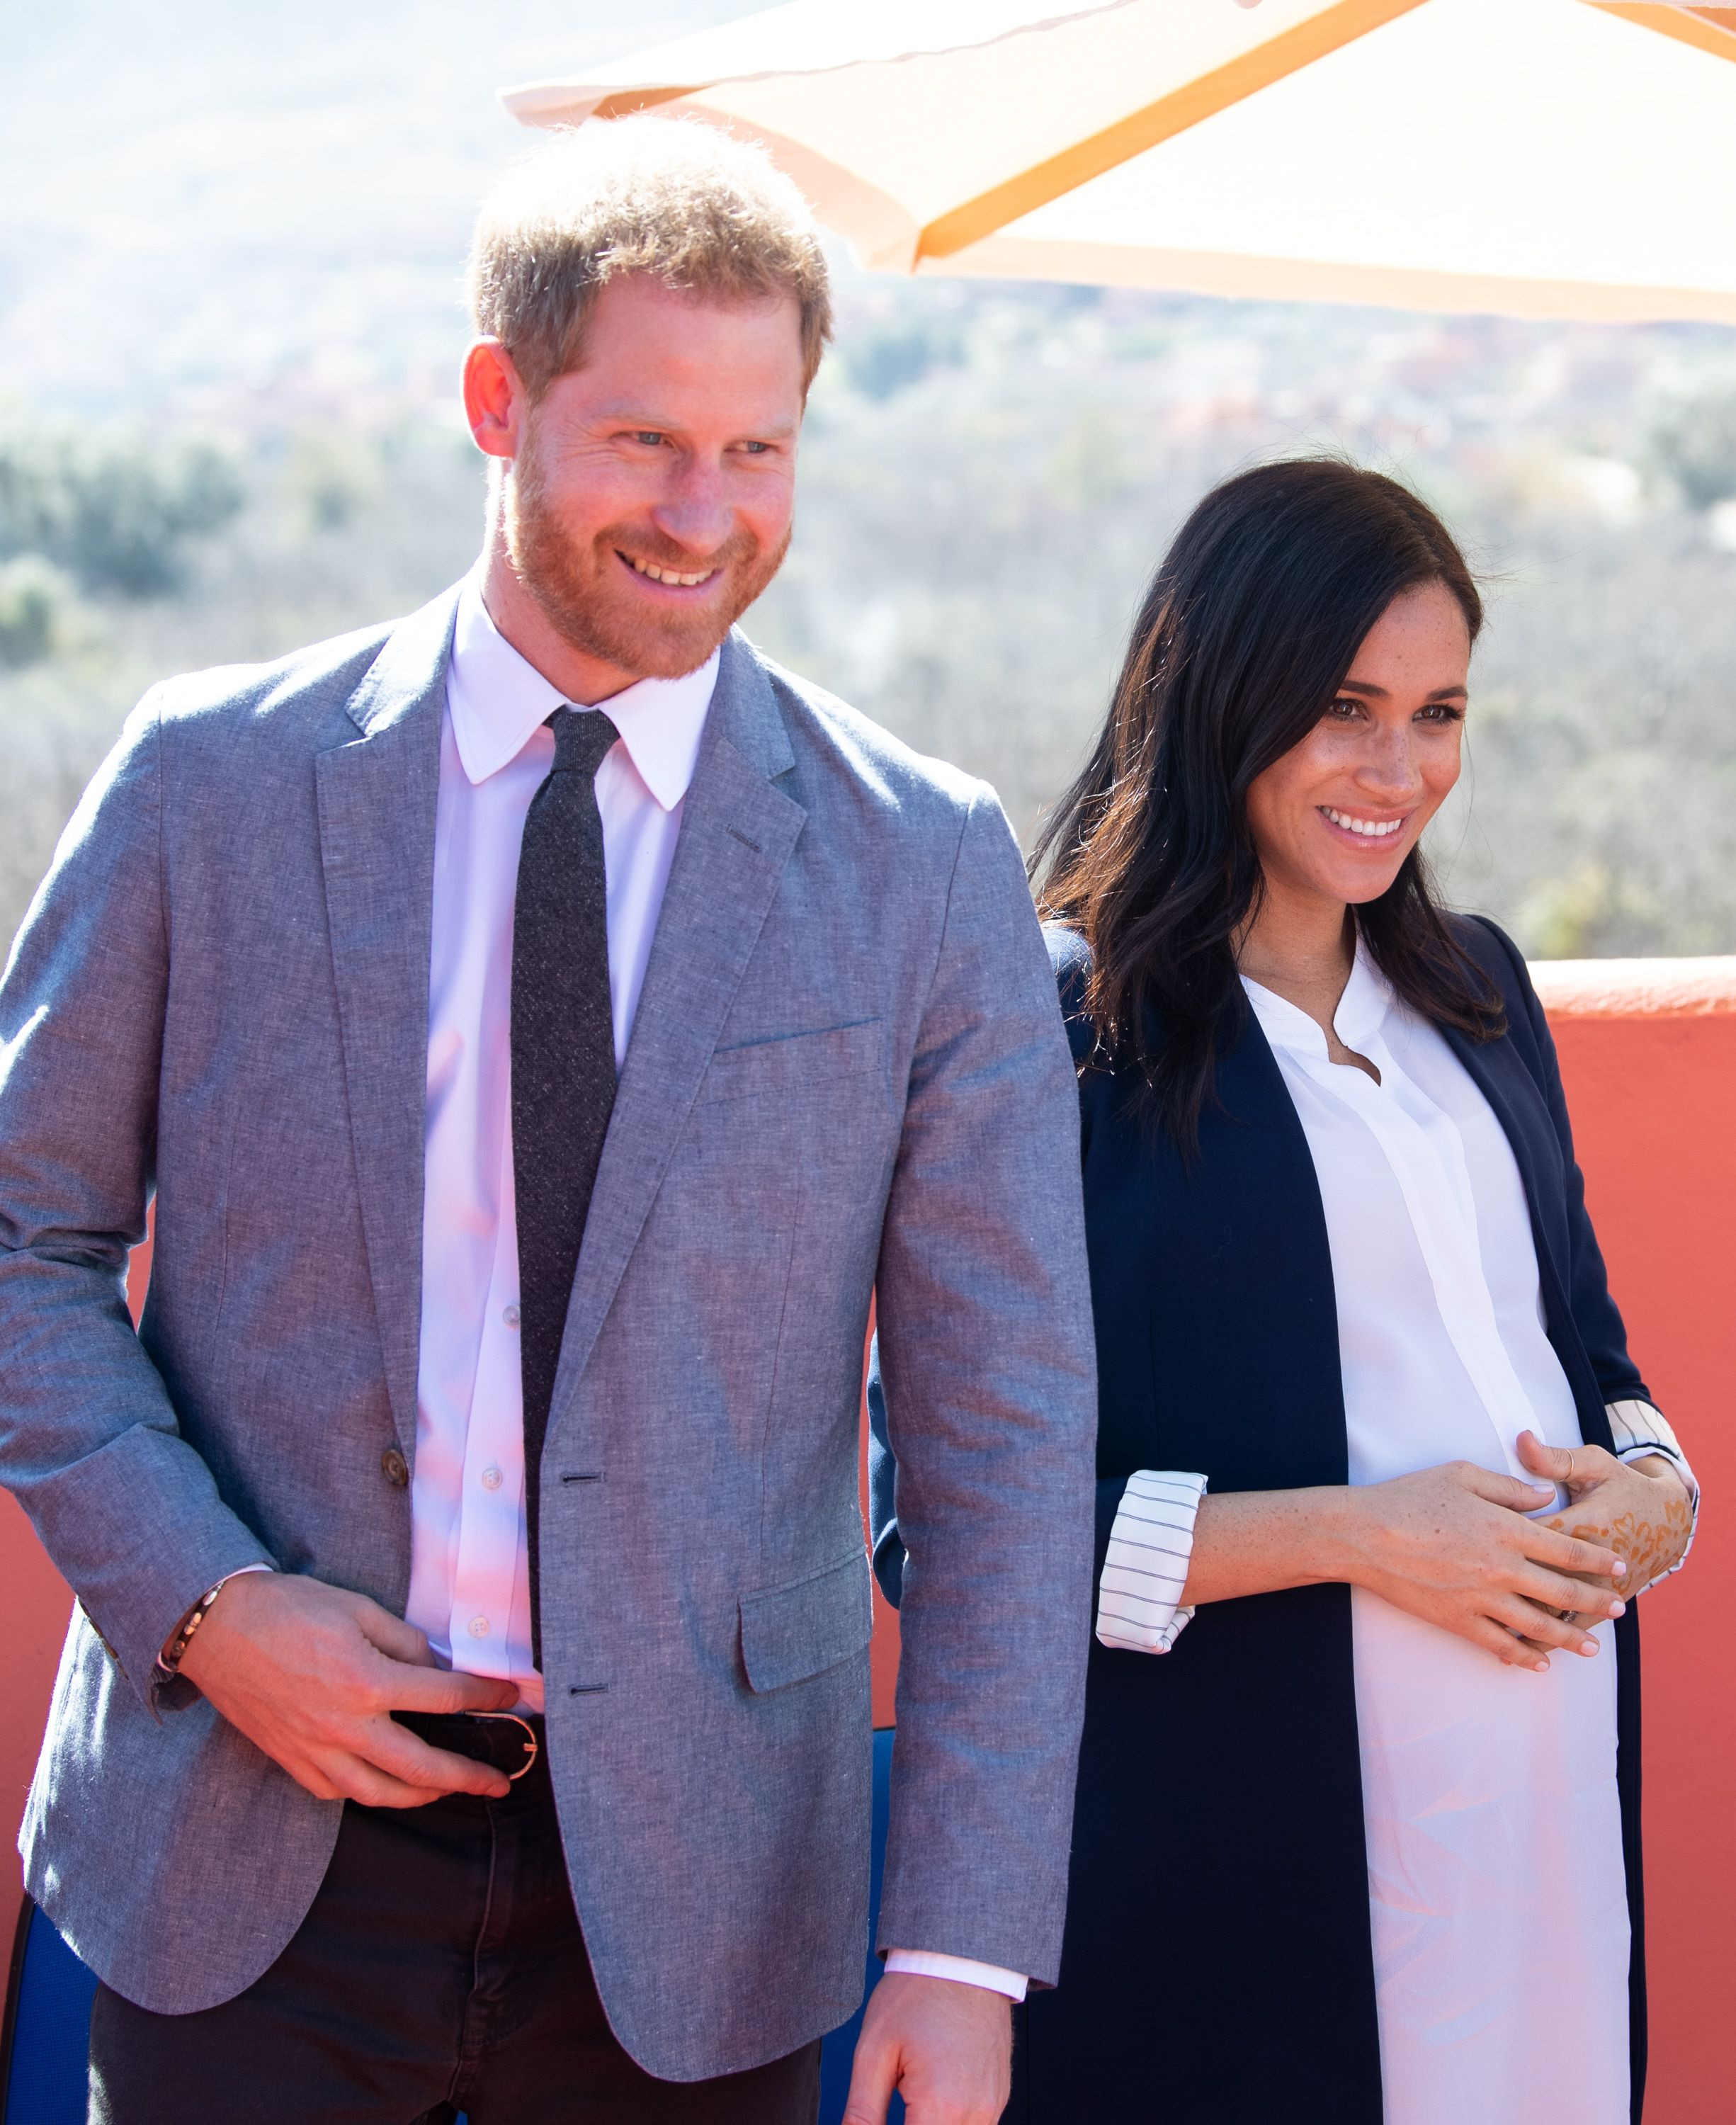 Prince Harry and Meghan Markle Are Reportedly Planning a 6-Month Visit to Africa 'in the Next Few Years'